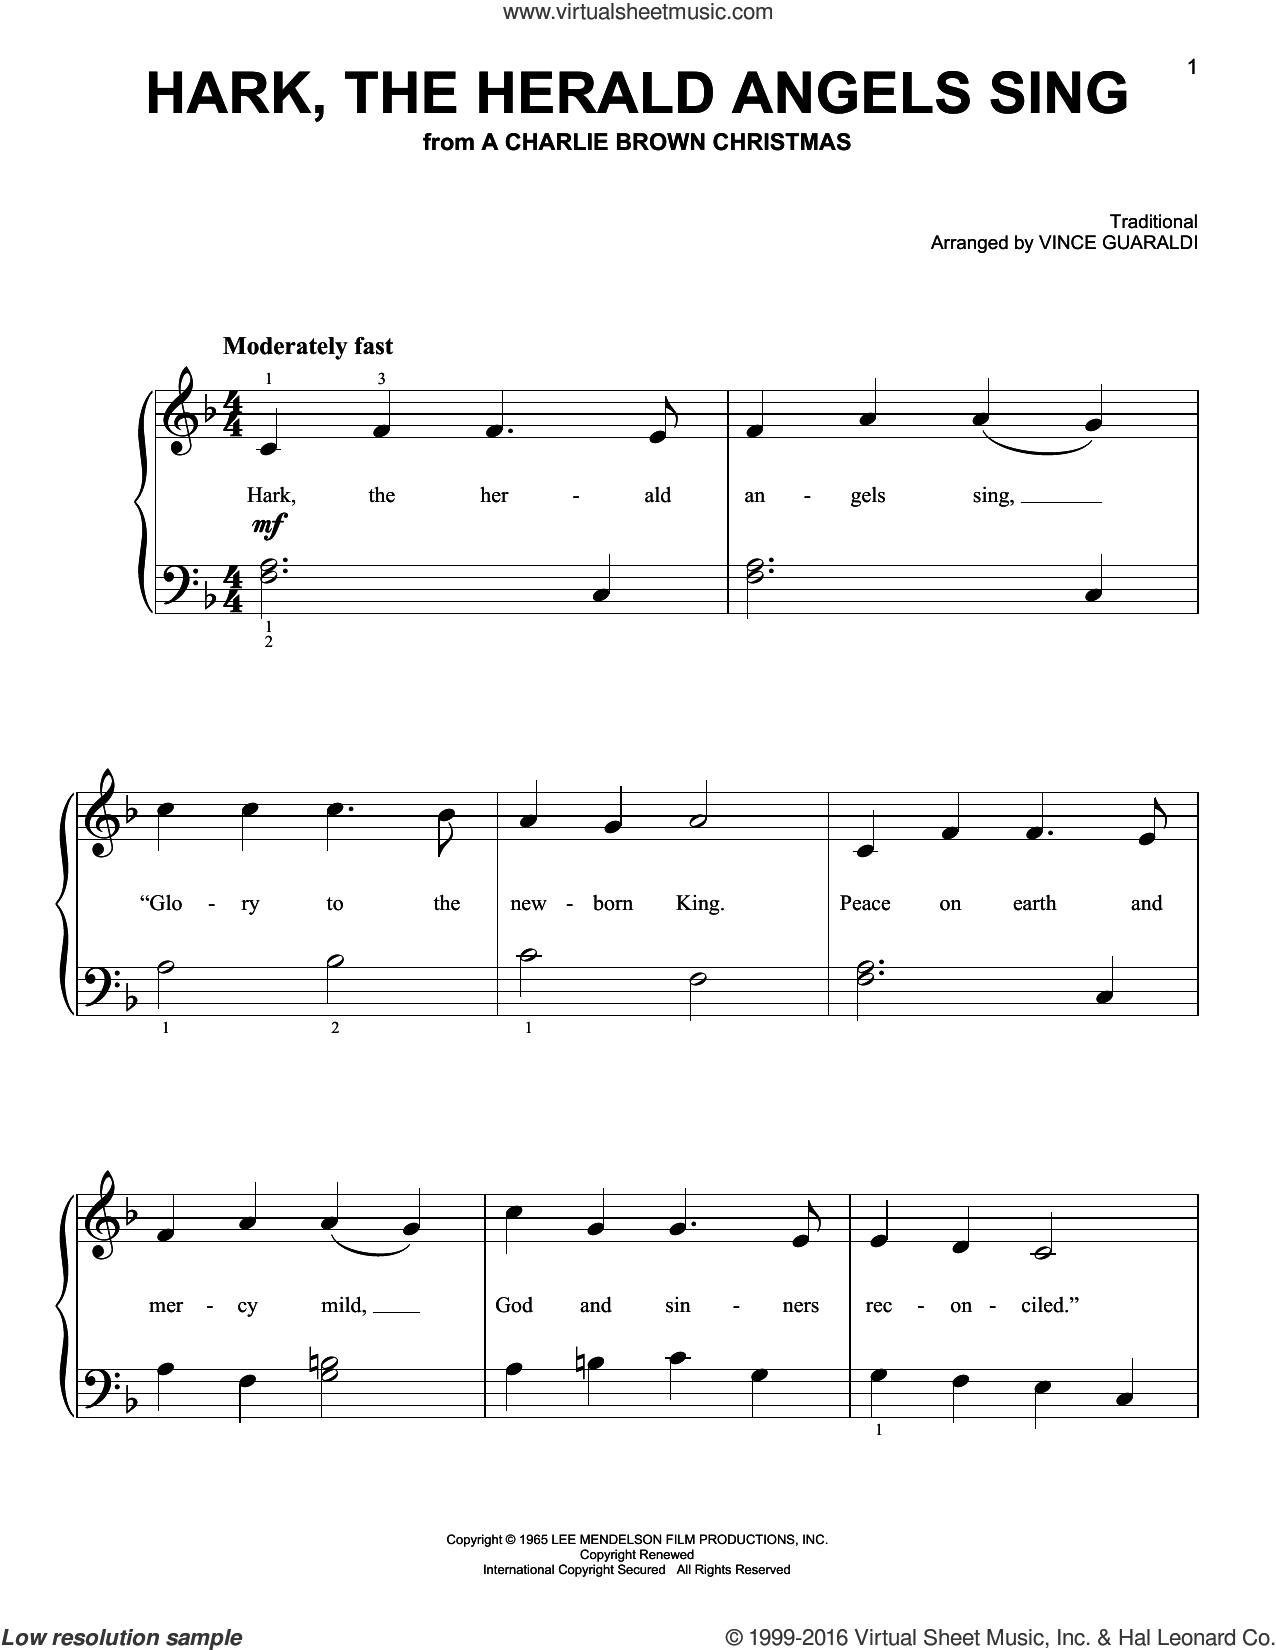 Hark, The Herald Angels Sing sheet music for piano solo by Vince Guaraldi, easy